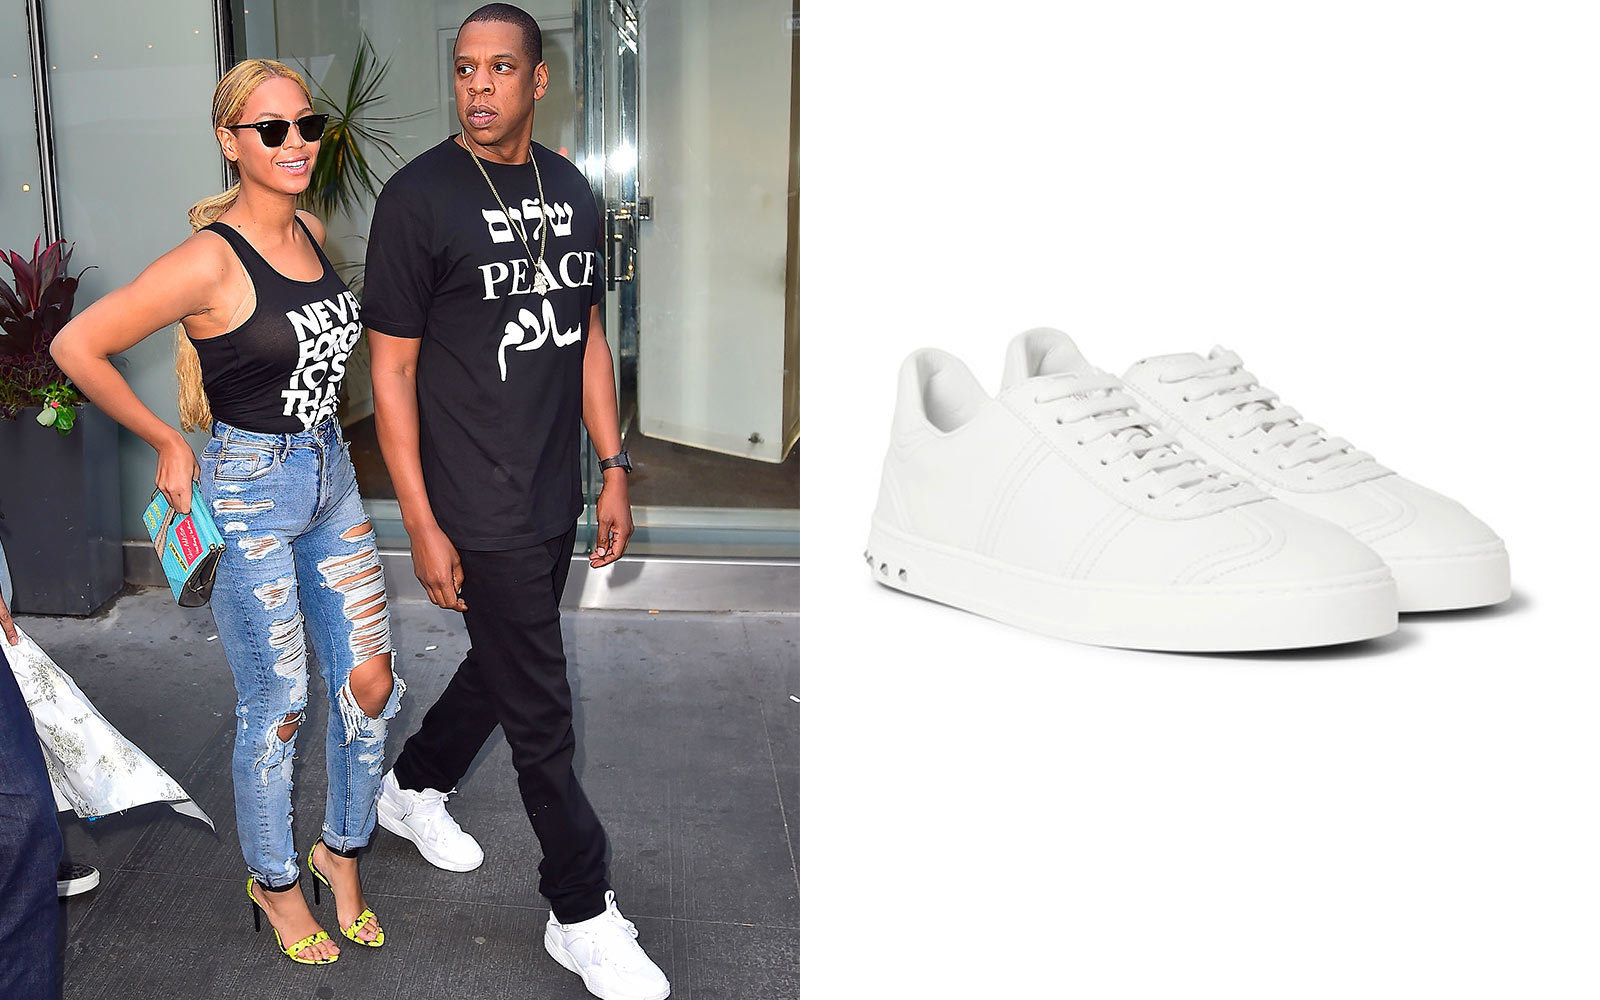 jordan shoes latest pics of beyonce and jay-z 2018 763549